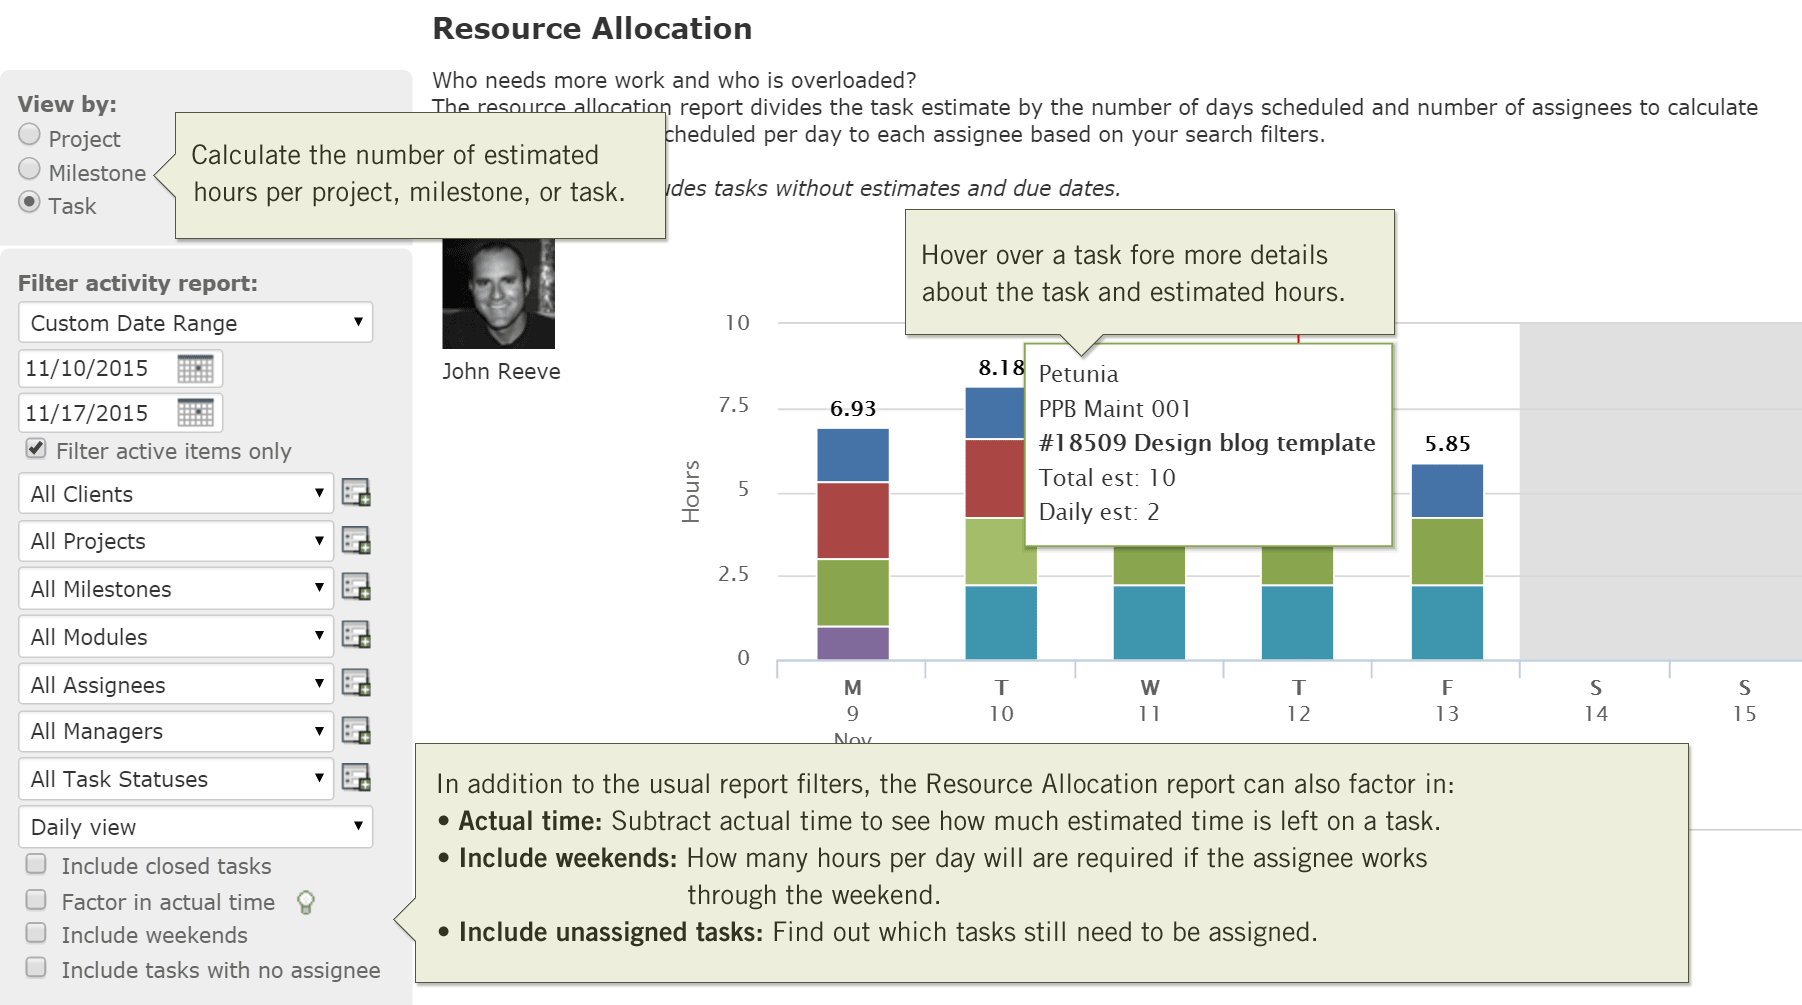 Resource Allocation Report